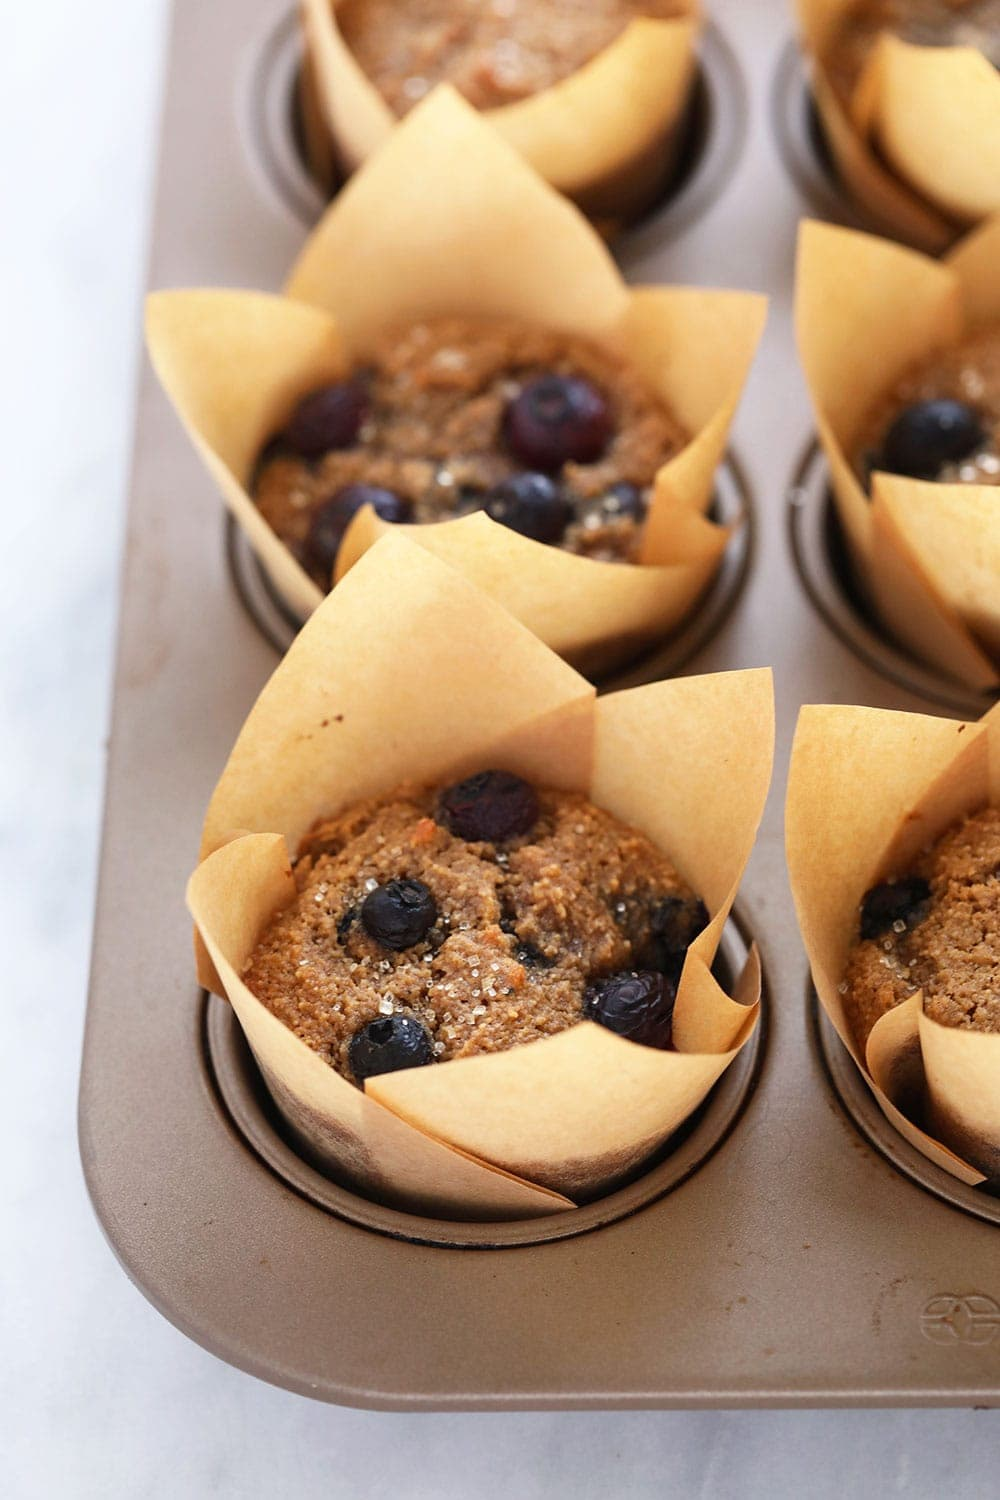 almond flour blueberry muffins in muffin liners after being baked